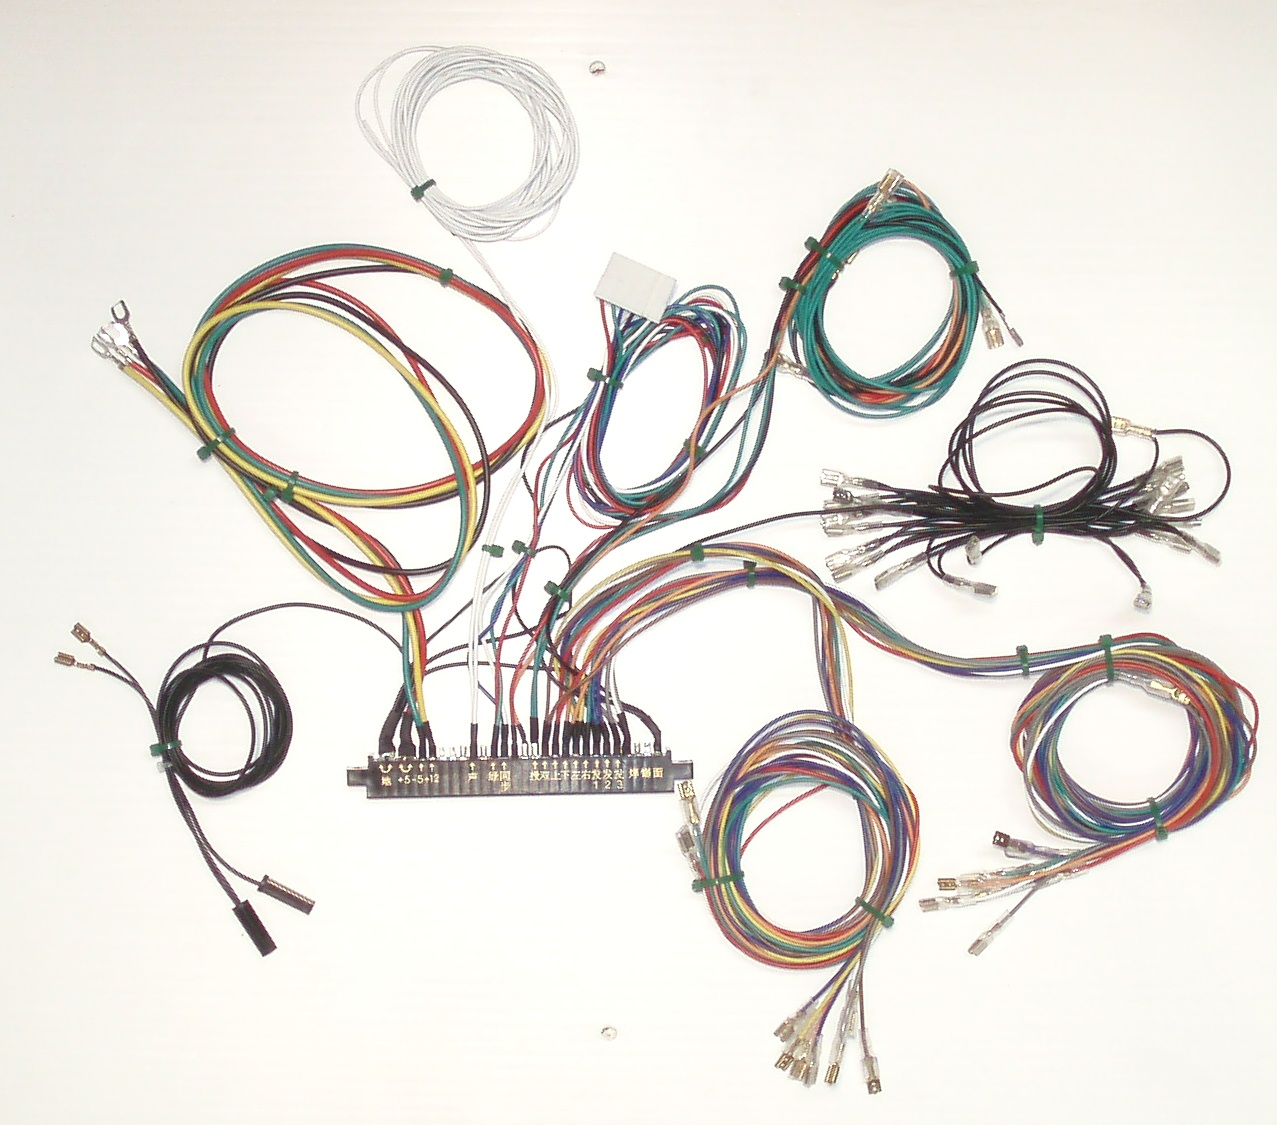 hight resolution of the wiring that connects the game s components monitor power supply control panel speaker etc to the pcb is called a jamma wiring harness